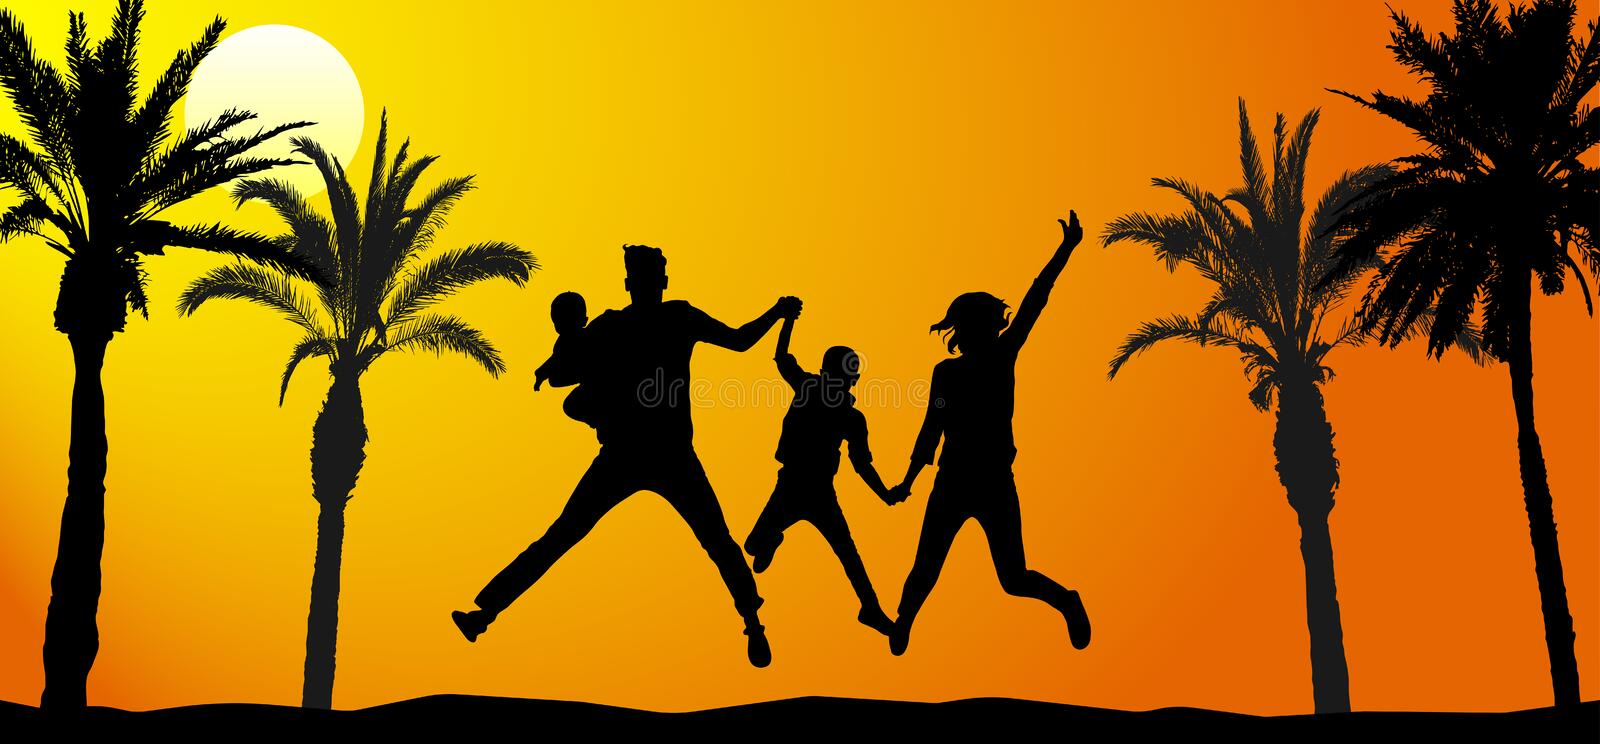 Jumping family on vacation. Silhouettes of people and palm trees, dawn. Vector illustration.  royalty free illustration